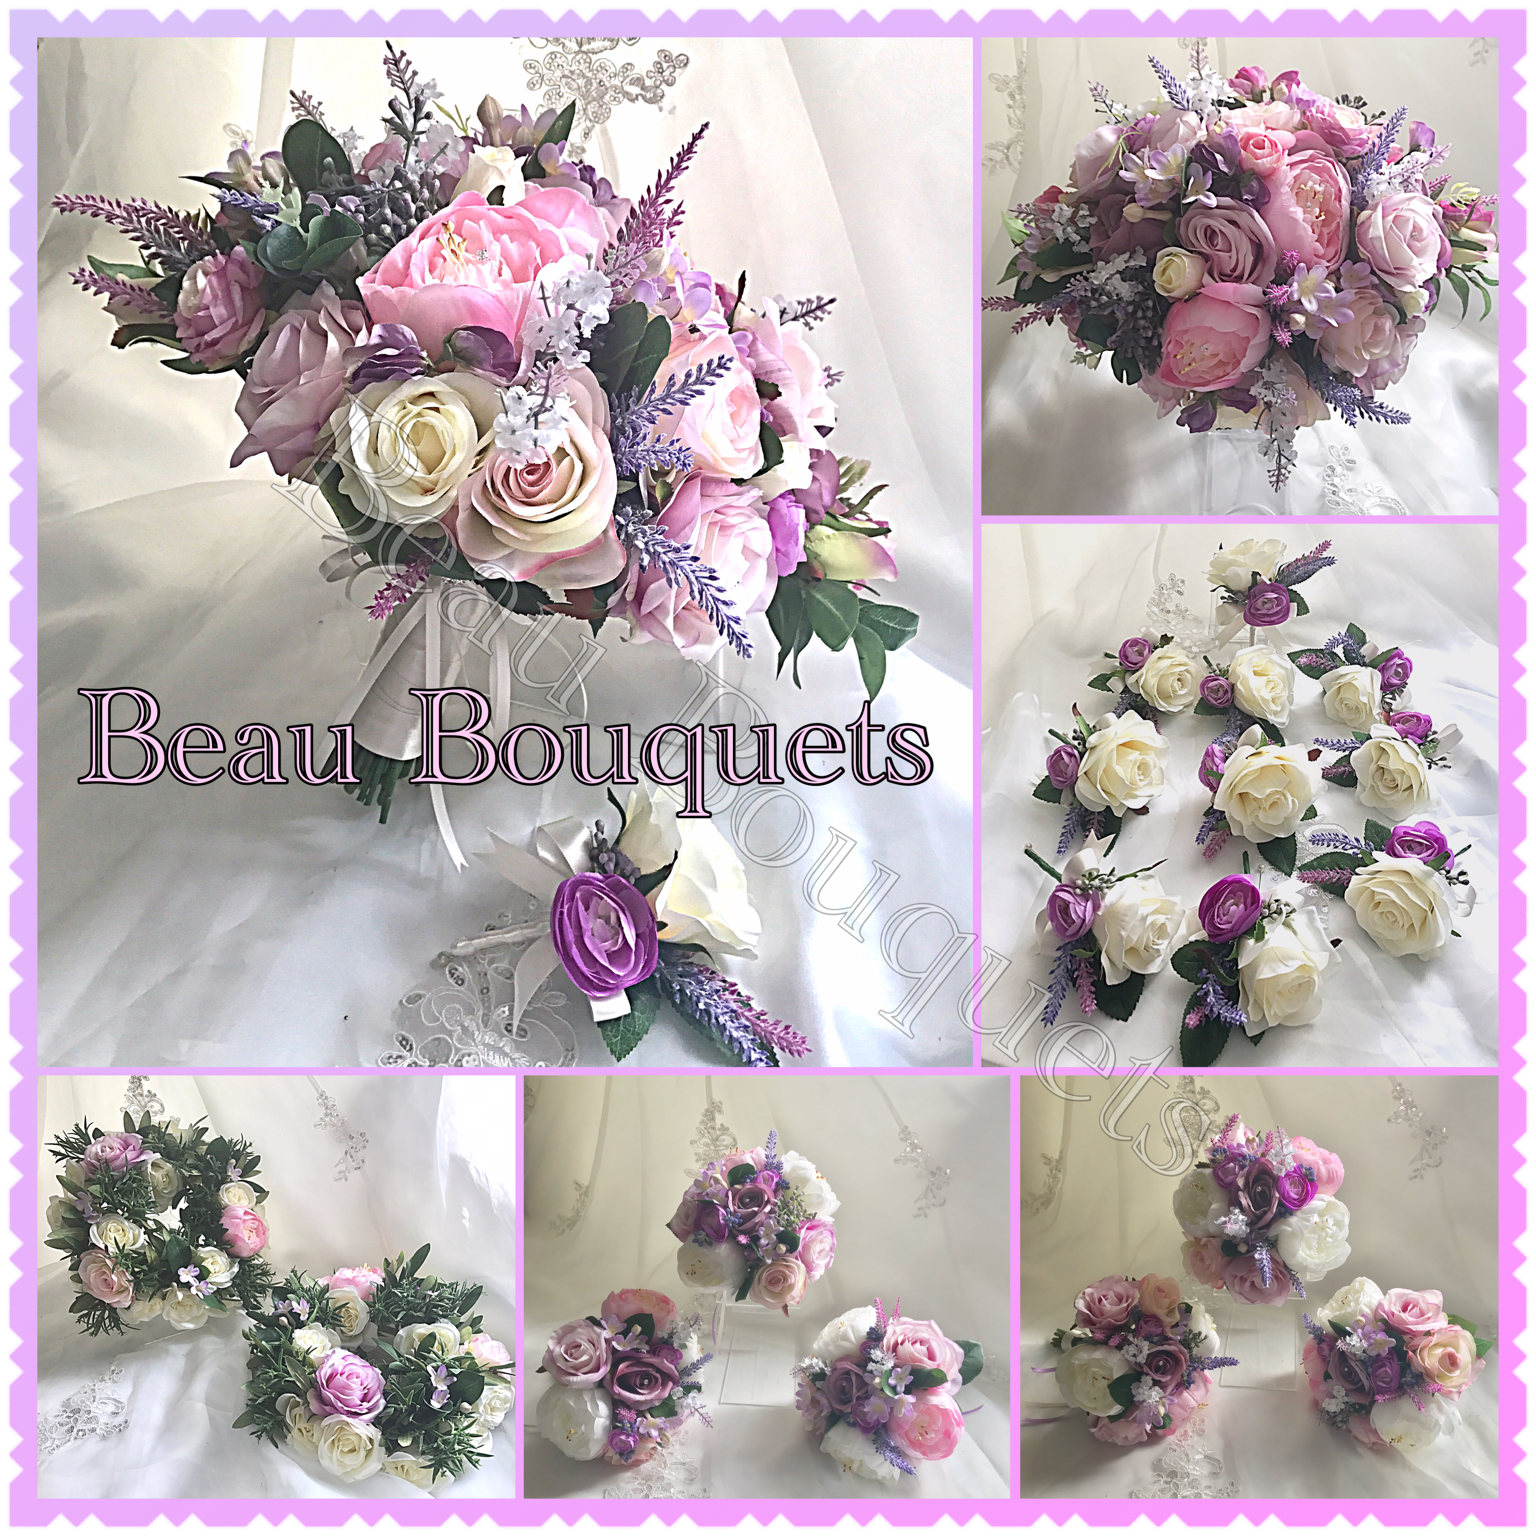 TREASURE - Oval Bride Bouquet Peony, rose, sweet pea, stephanotis & trailing foliage in lilac, pink & Ivory with diamamnte detail